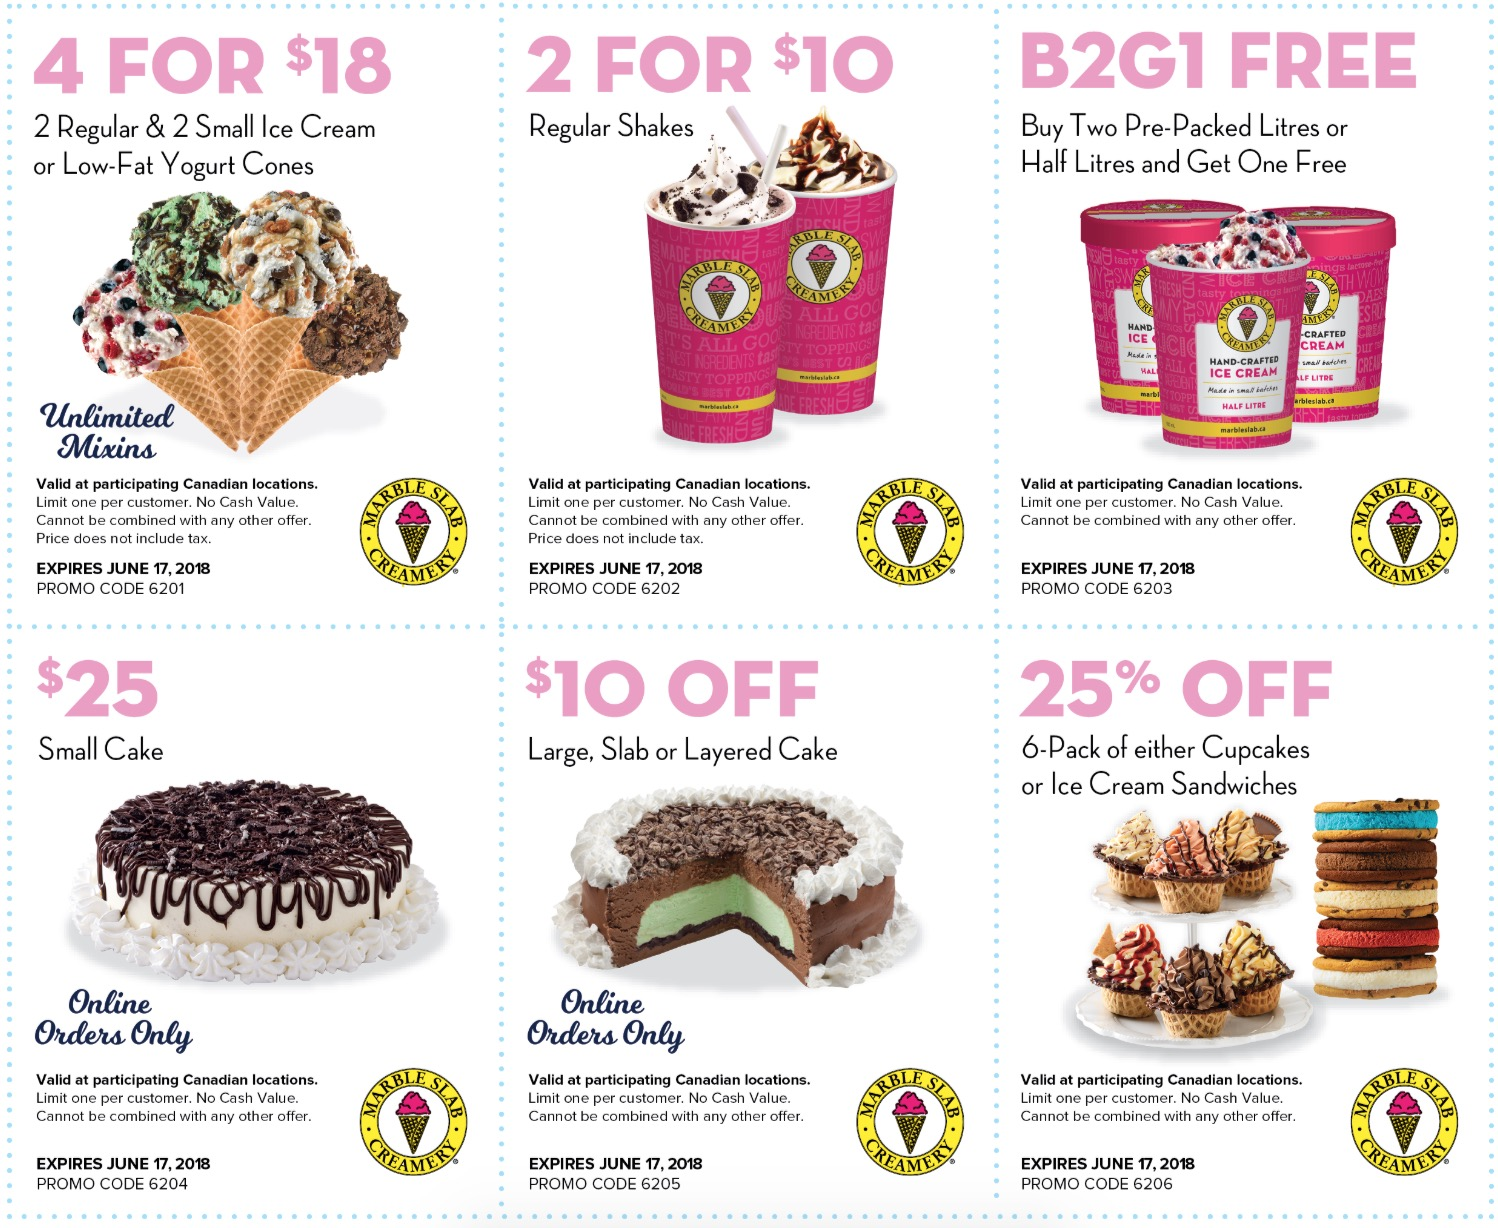 Marble Slab Creamery Canada Coupons Buy 2 Pre Packed